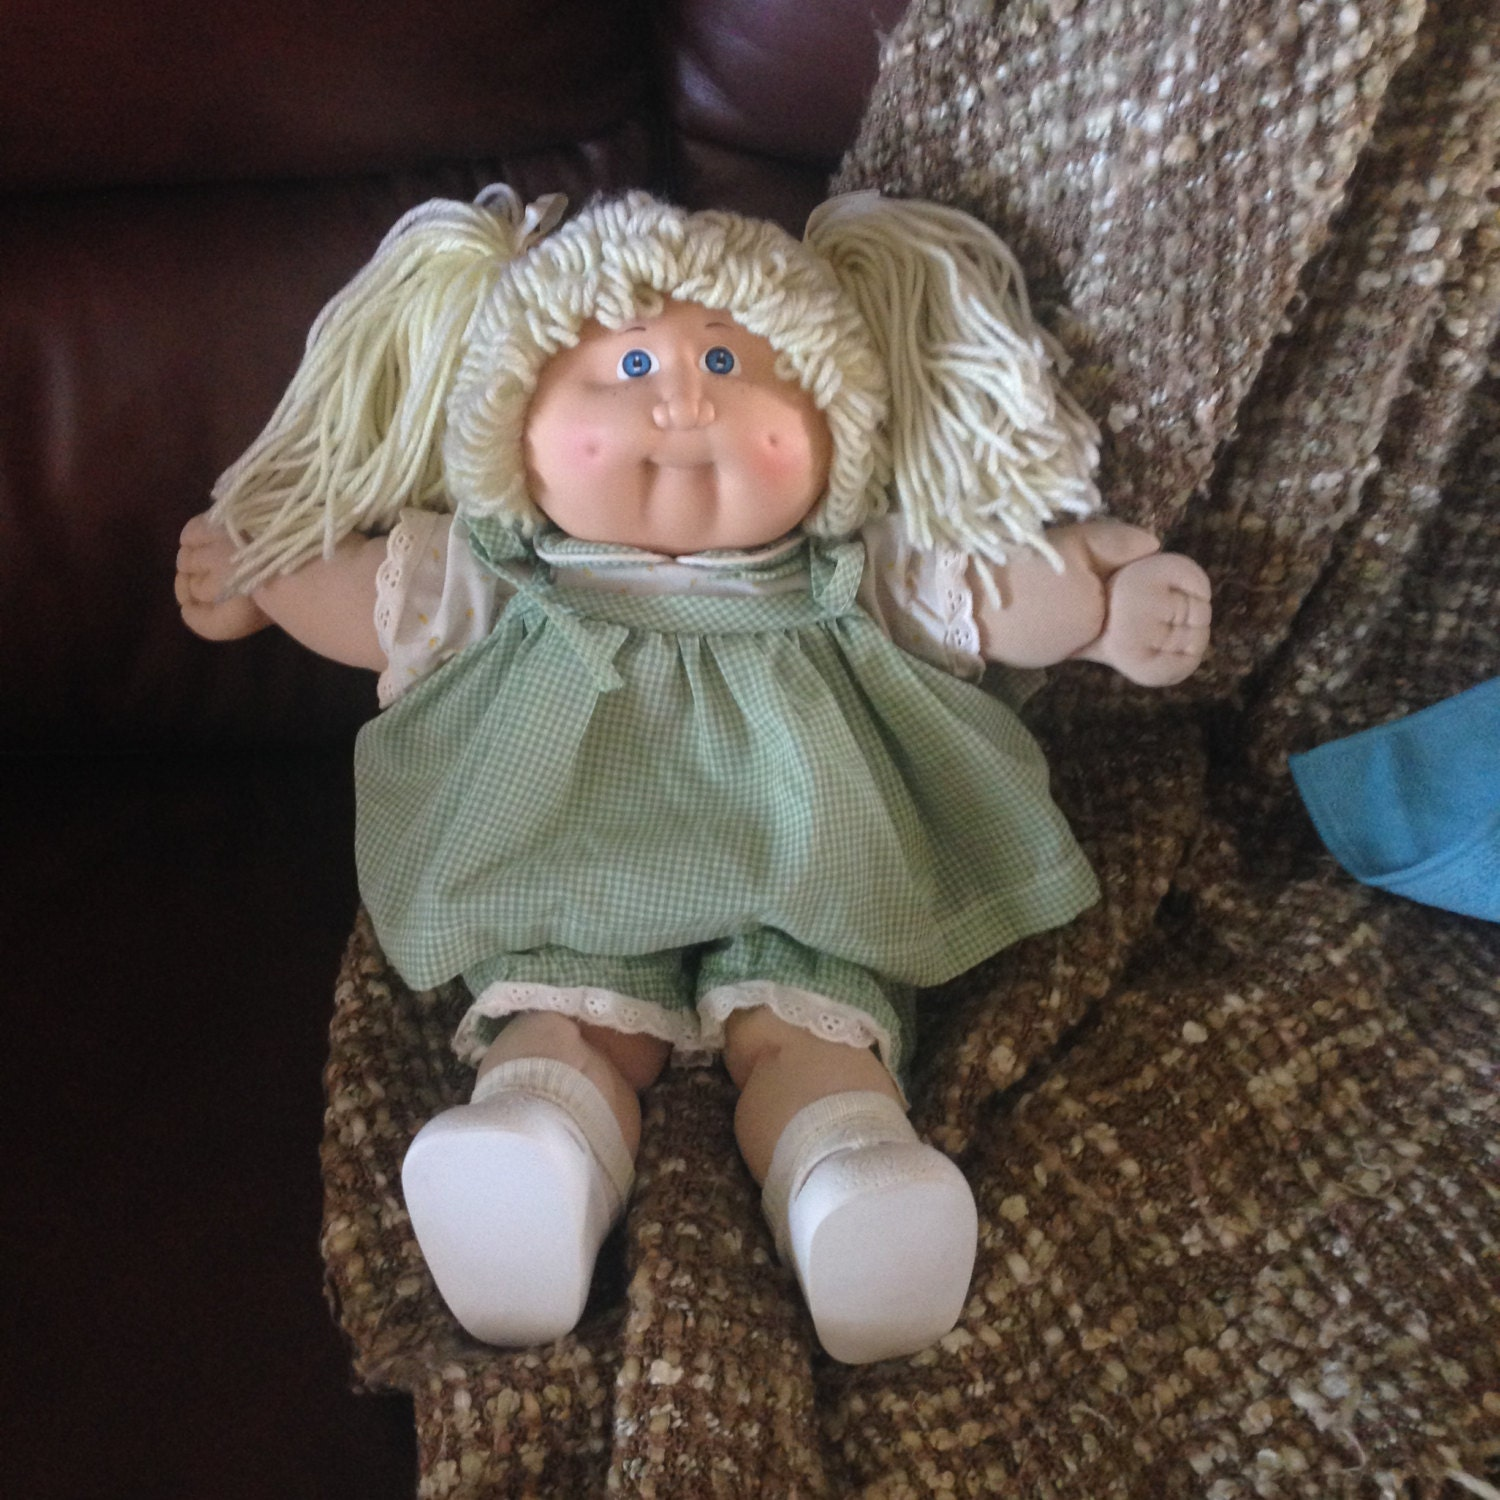 how to know what yoyr cabbage patch doll name is